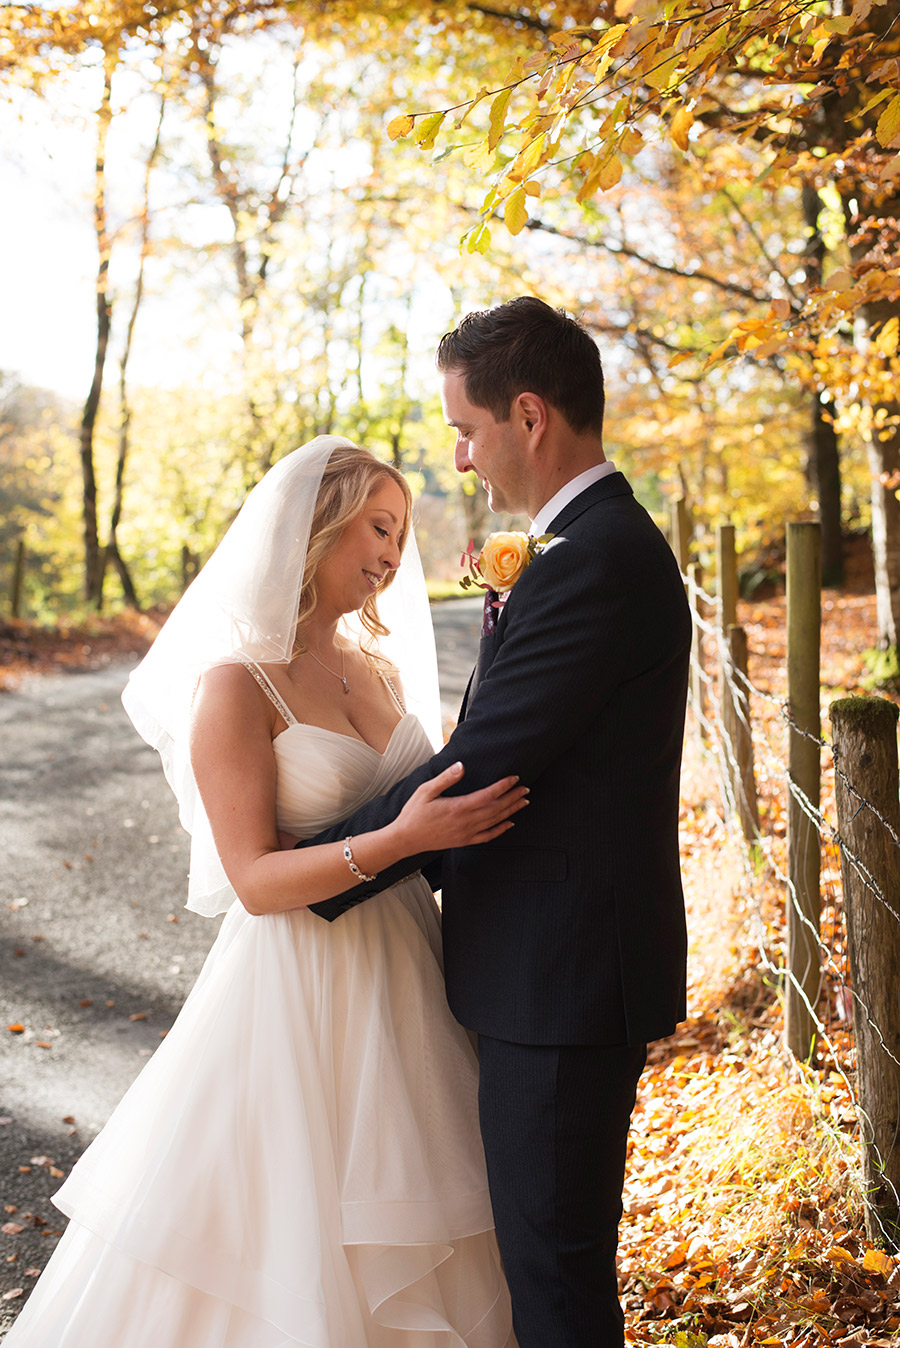 bride and groom in wicklow forest autumn colour leaves